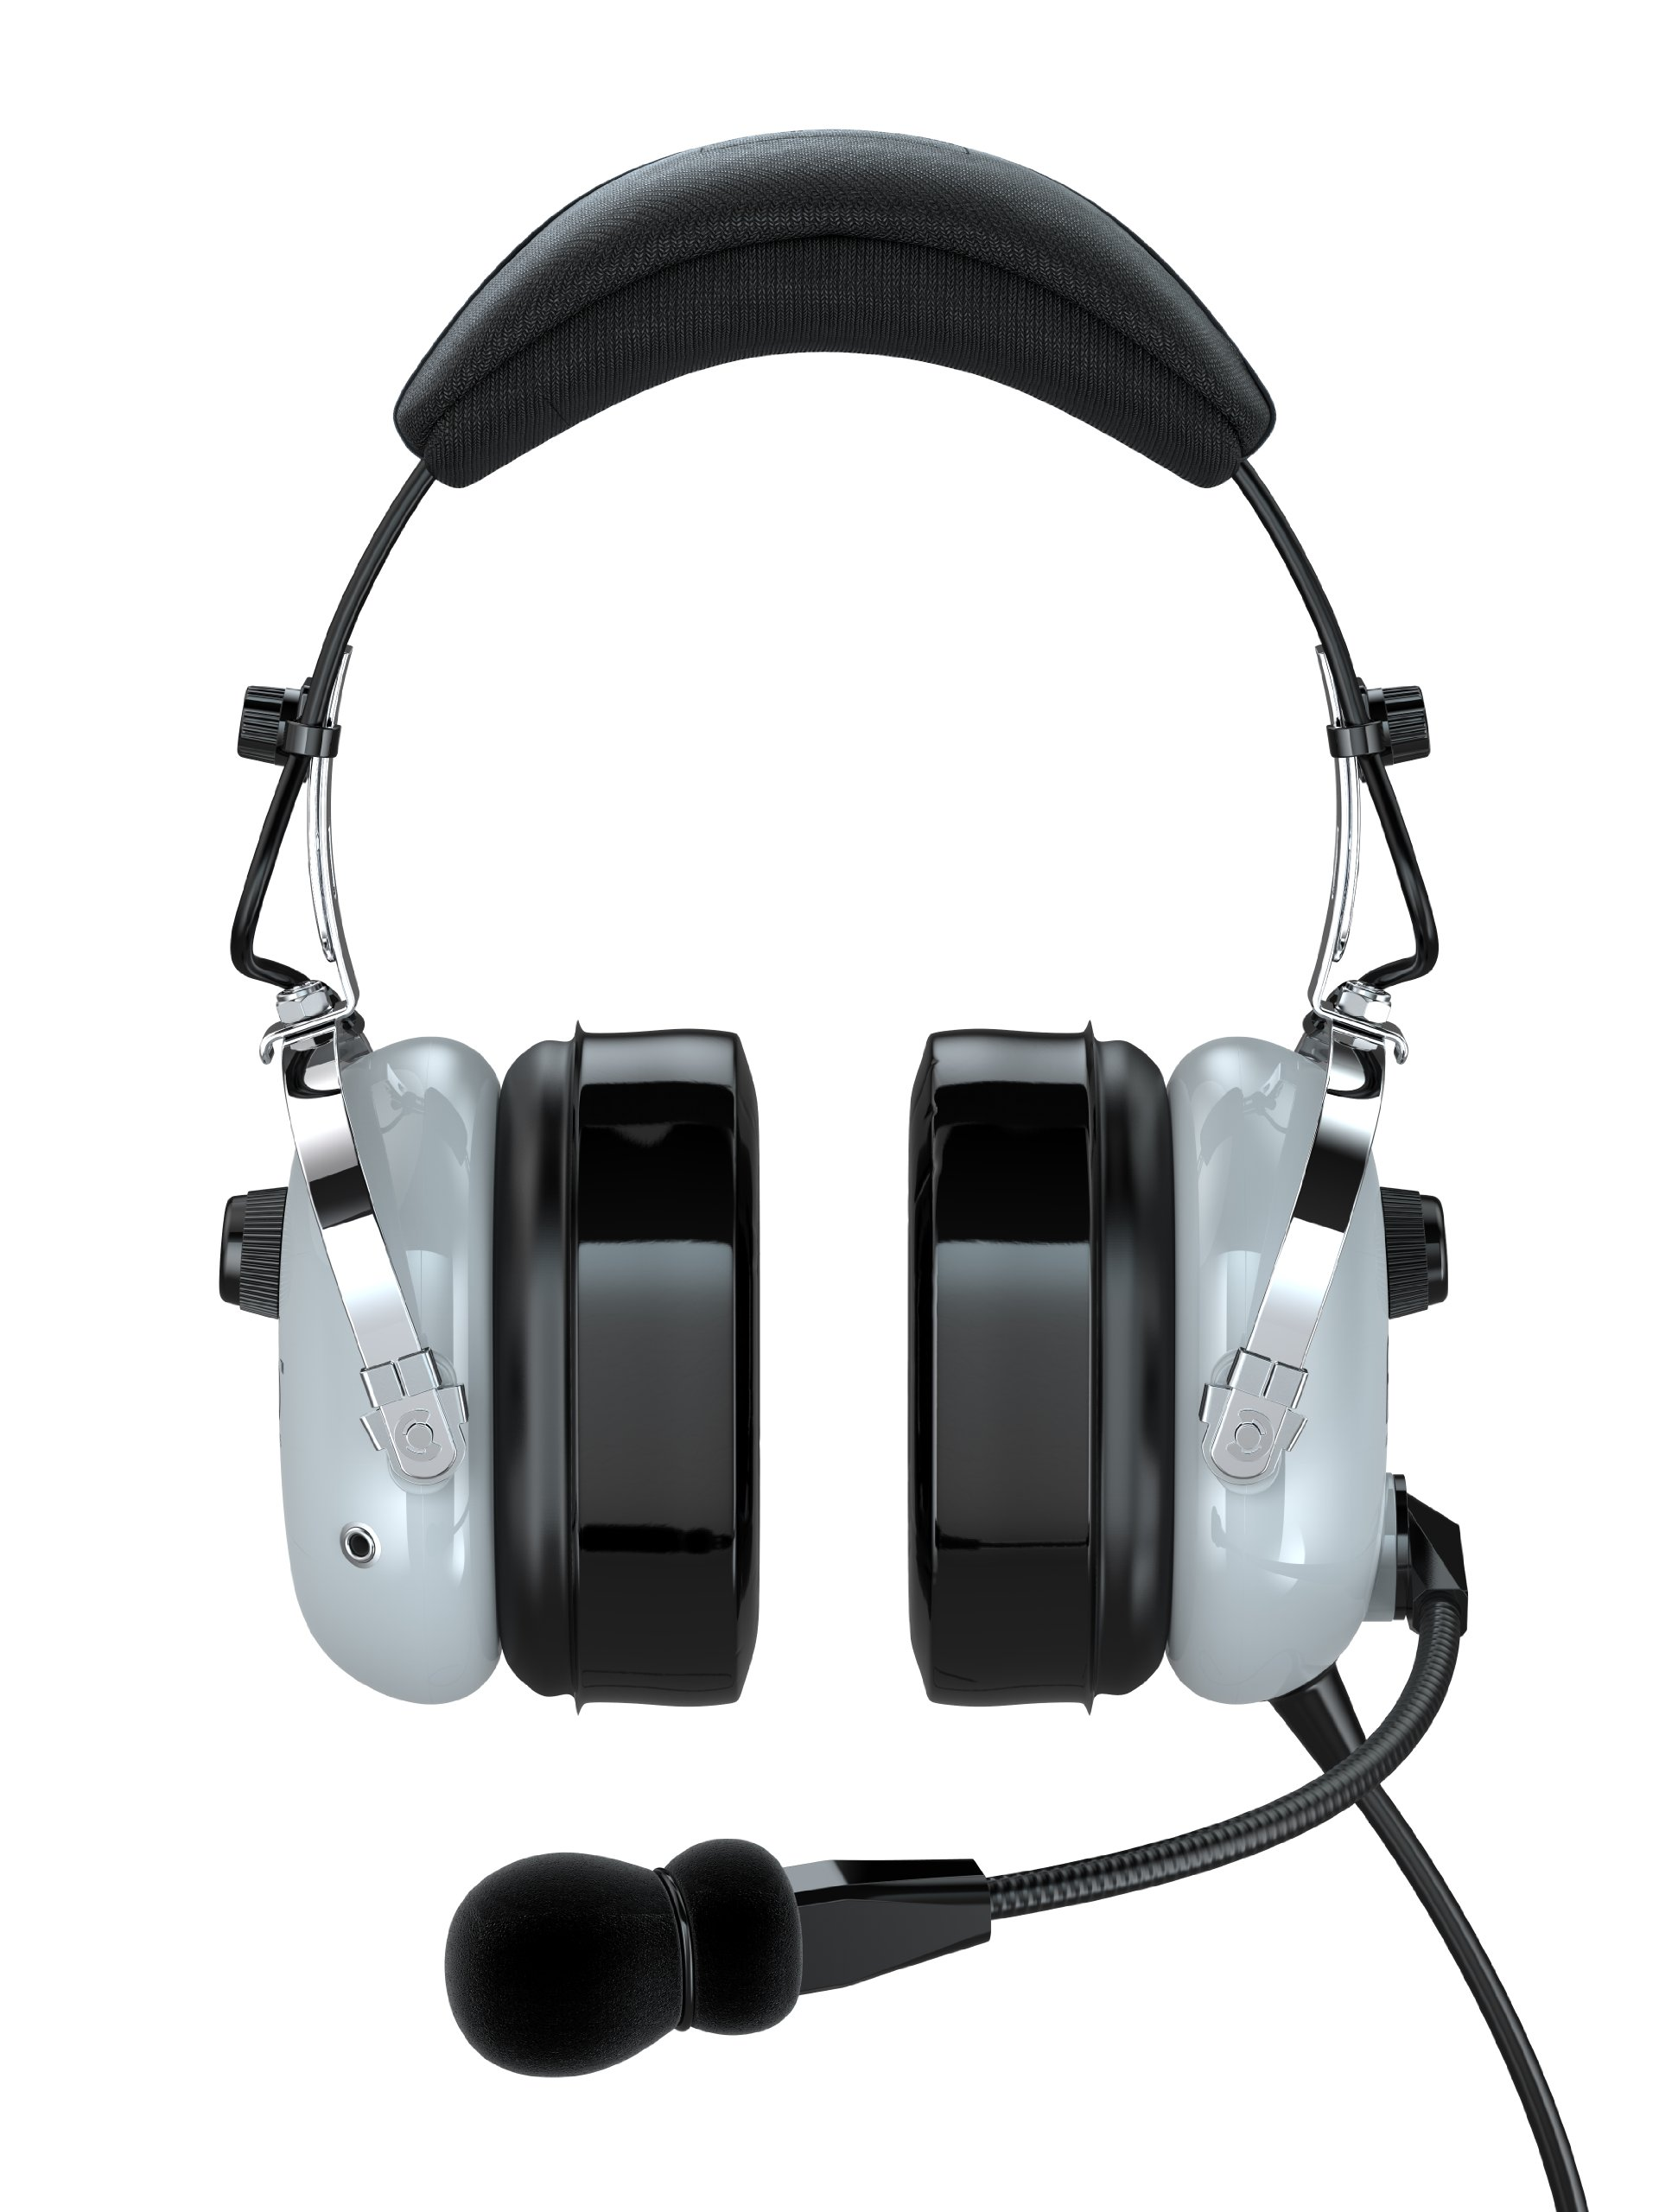 FARO G2-PNR Premium Pilot Aviation Headset with Mp3 Input (Adapters for aviation headset connectors, standard dual GA adapter universal support)-Gray by Faro Aviation